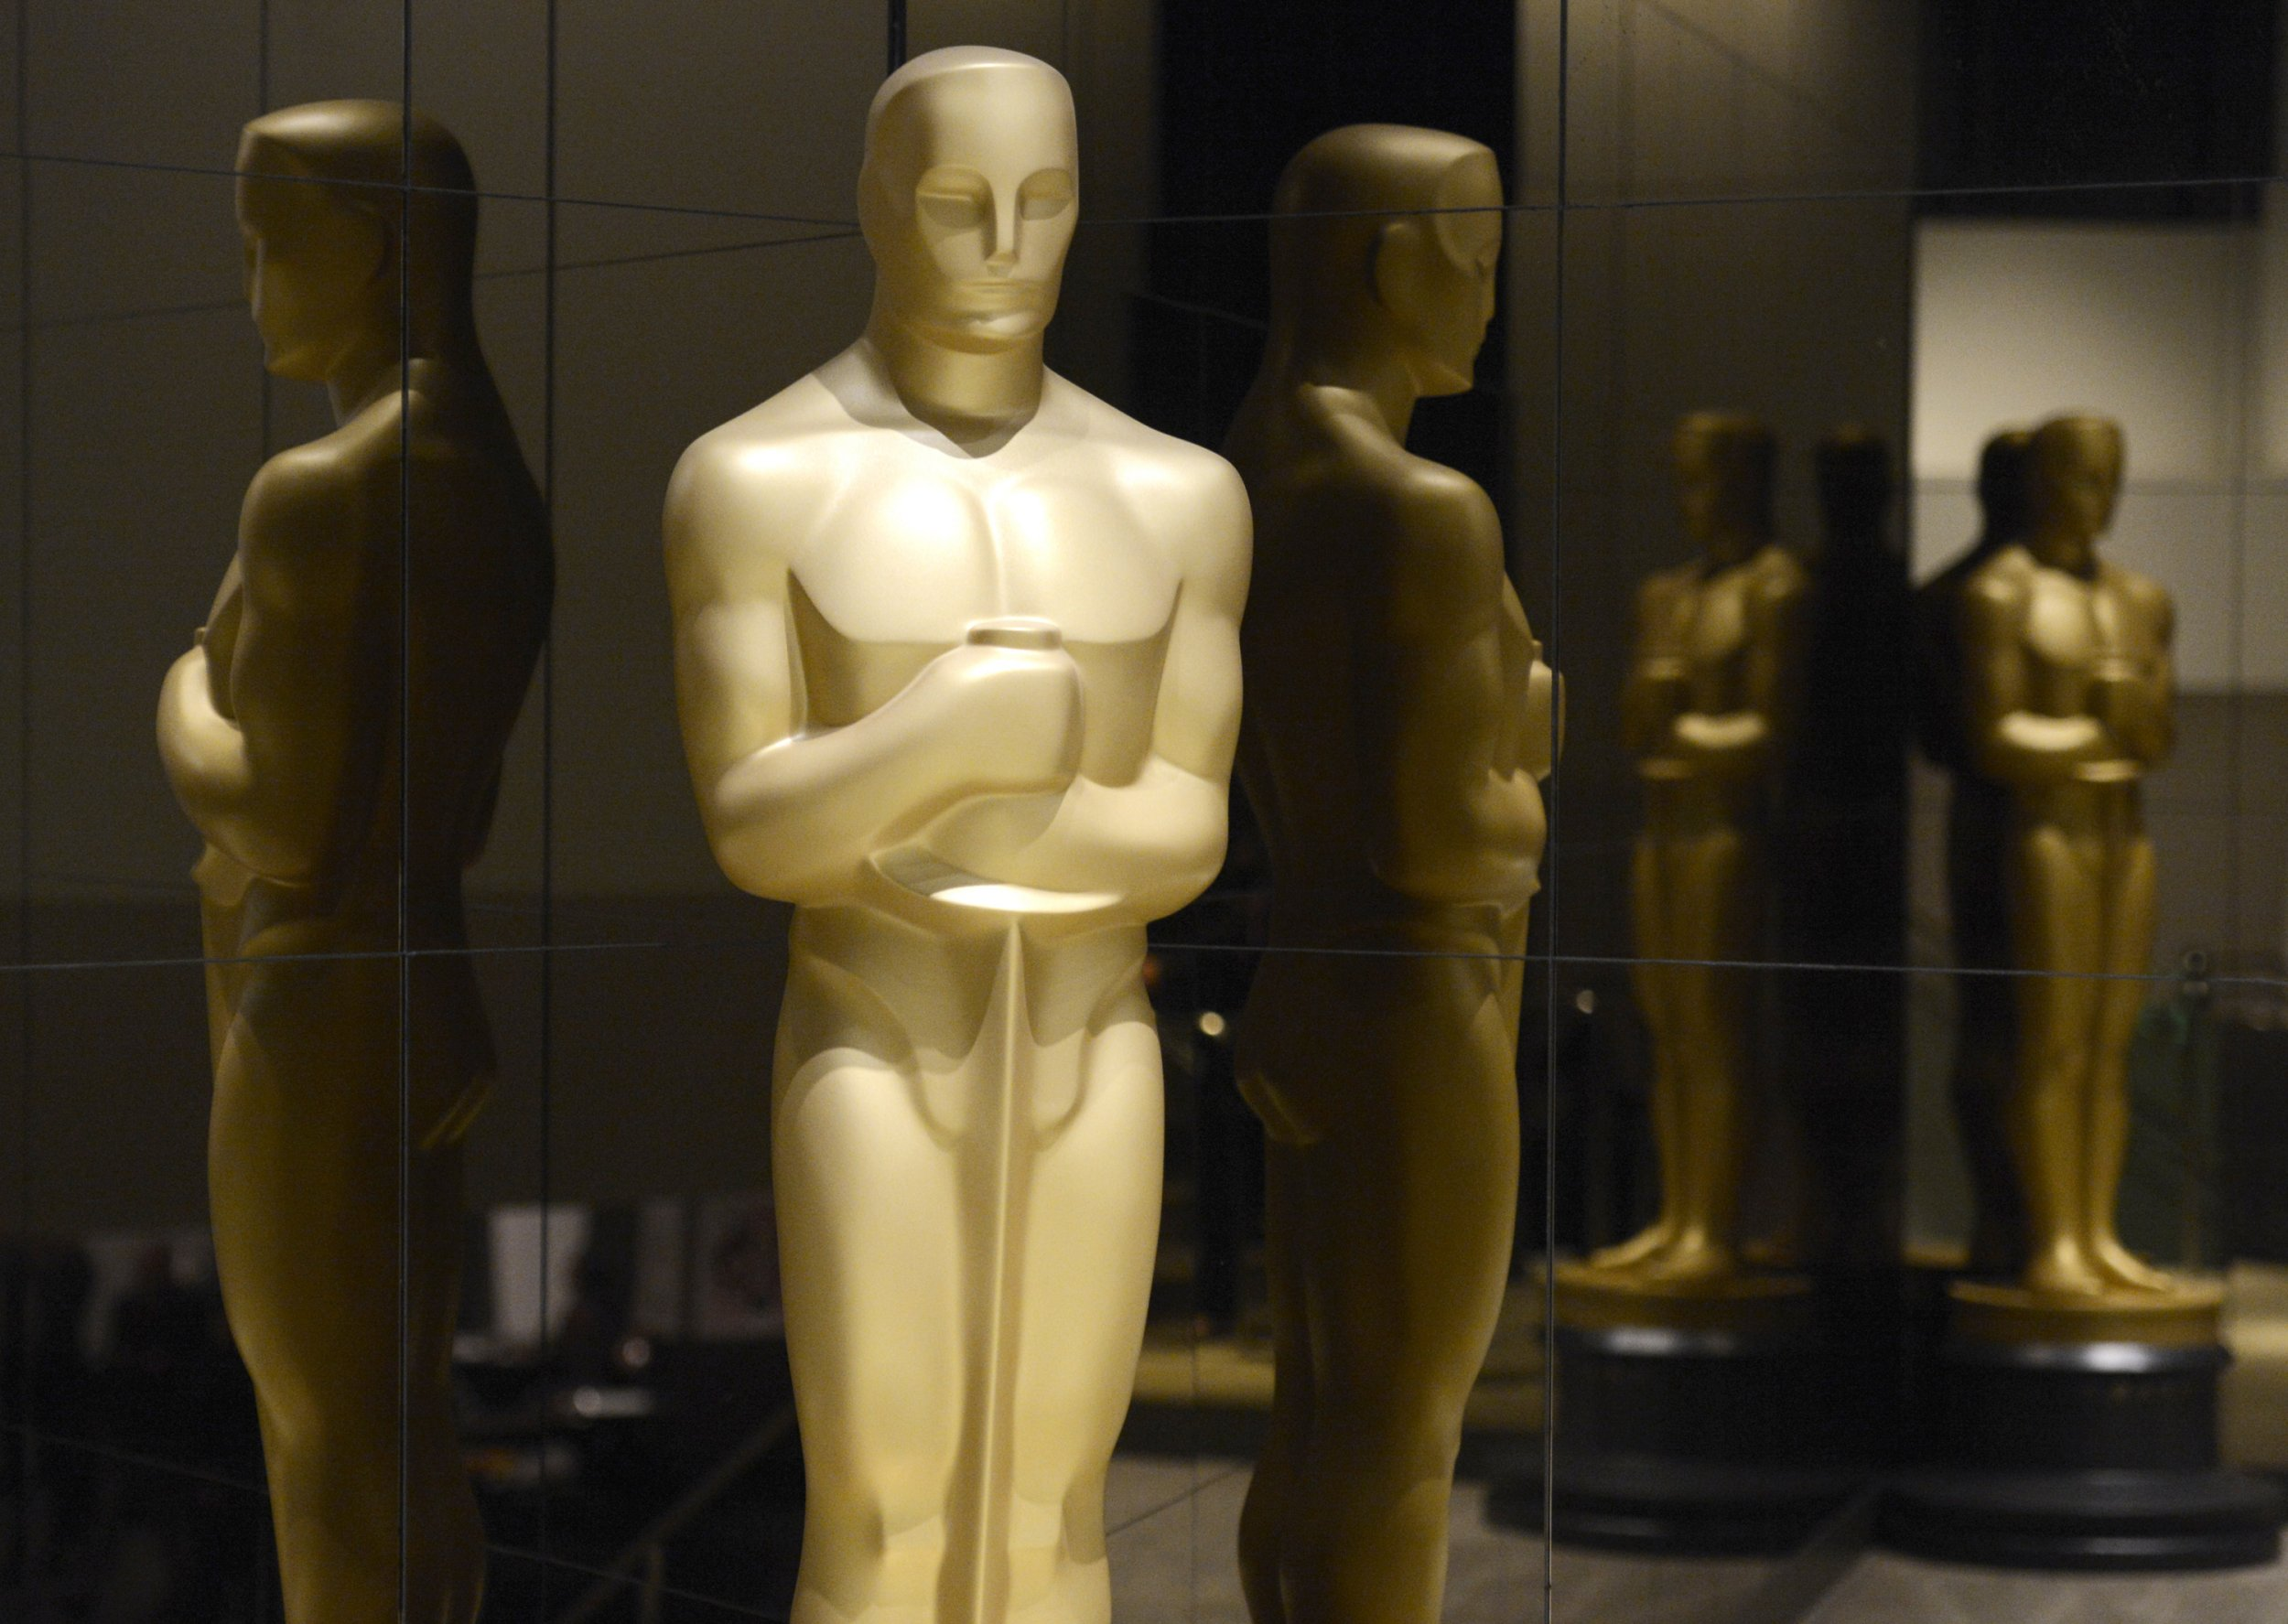 Award show calendar for 2018 full schedule list of dates - Academy awards 2017 download ...